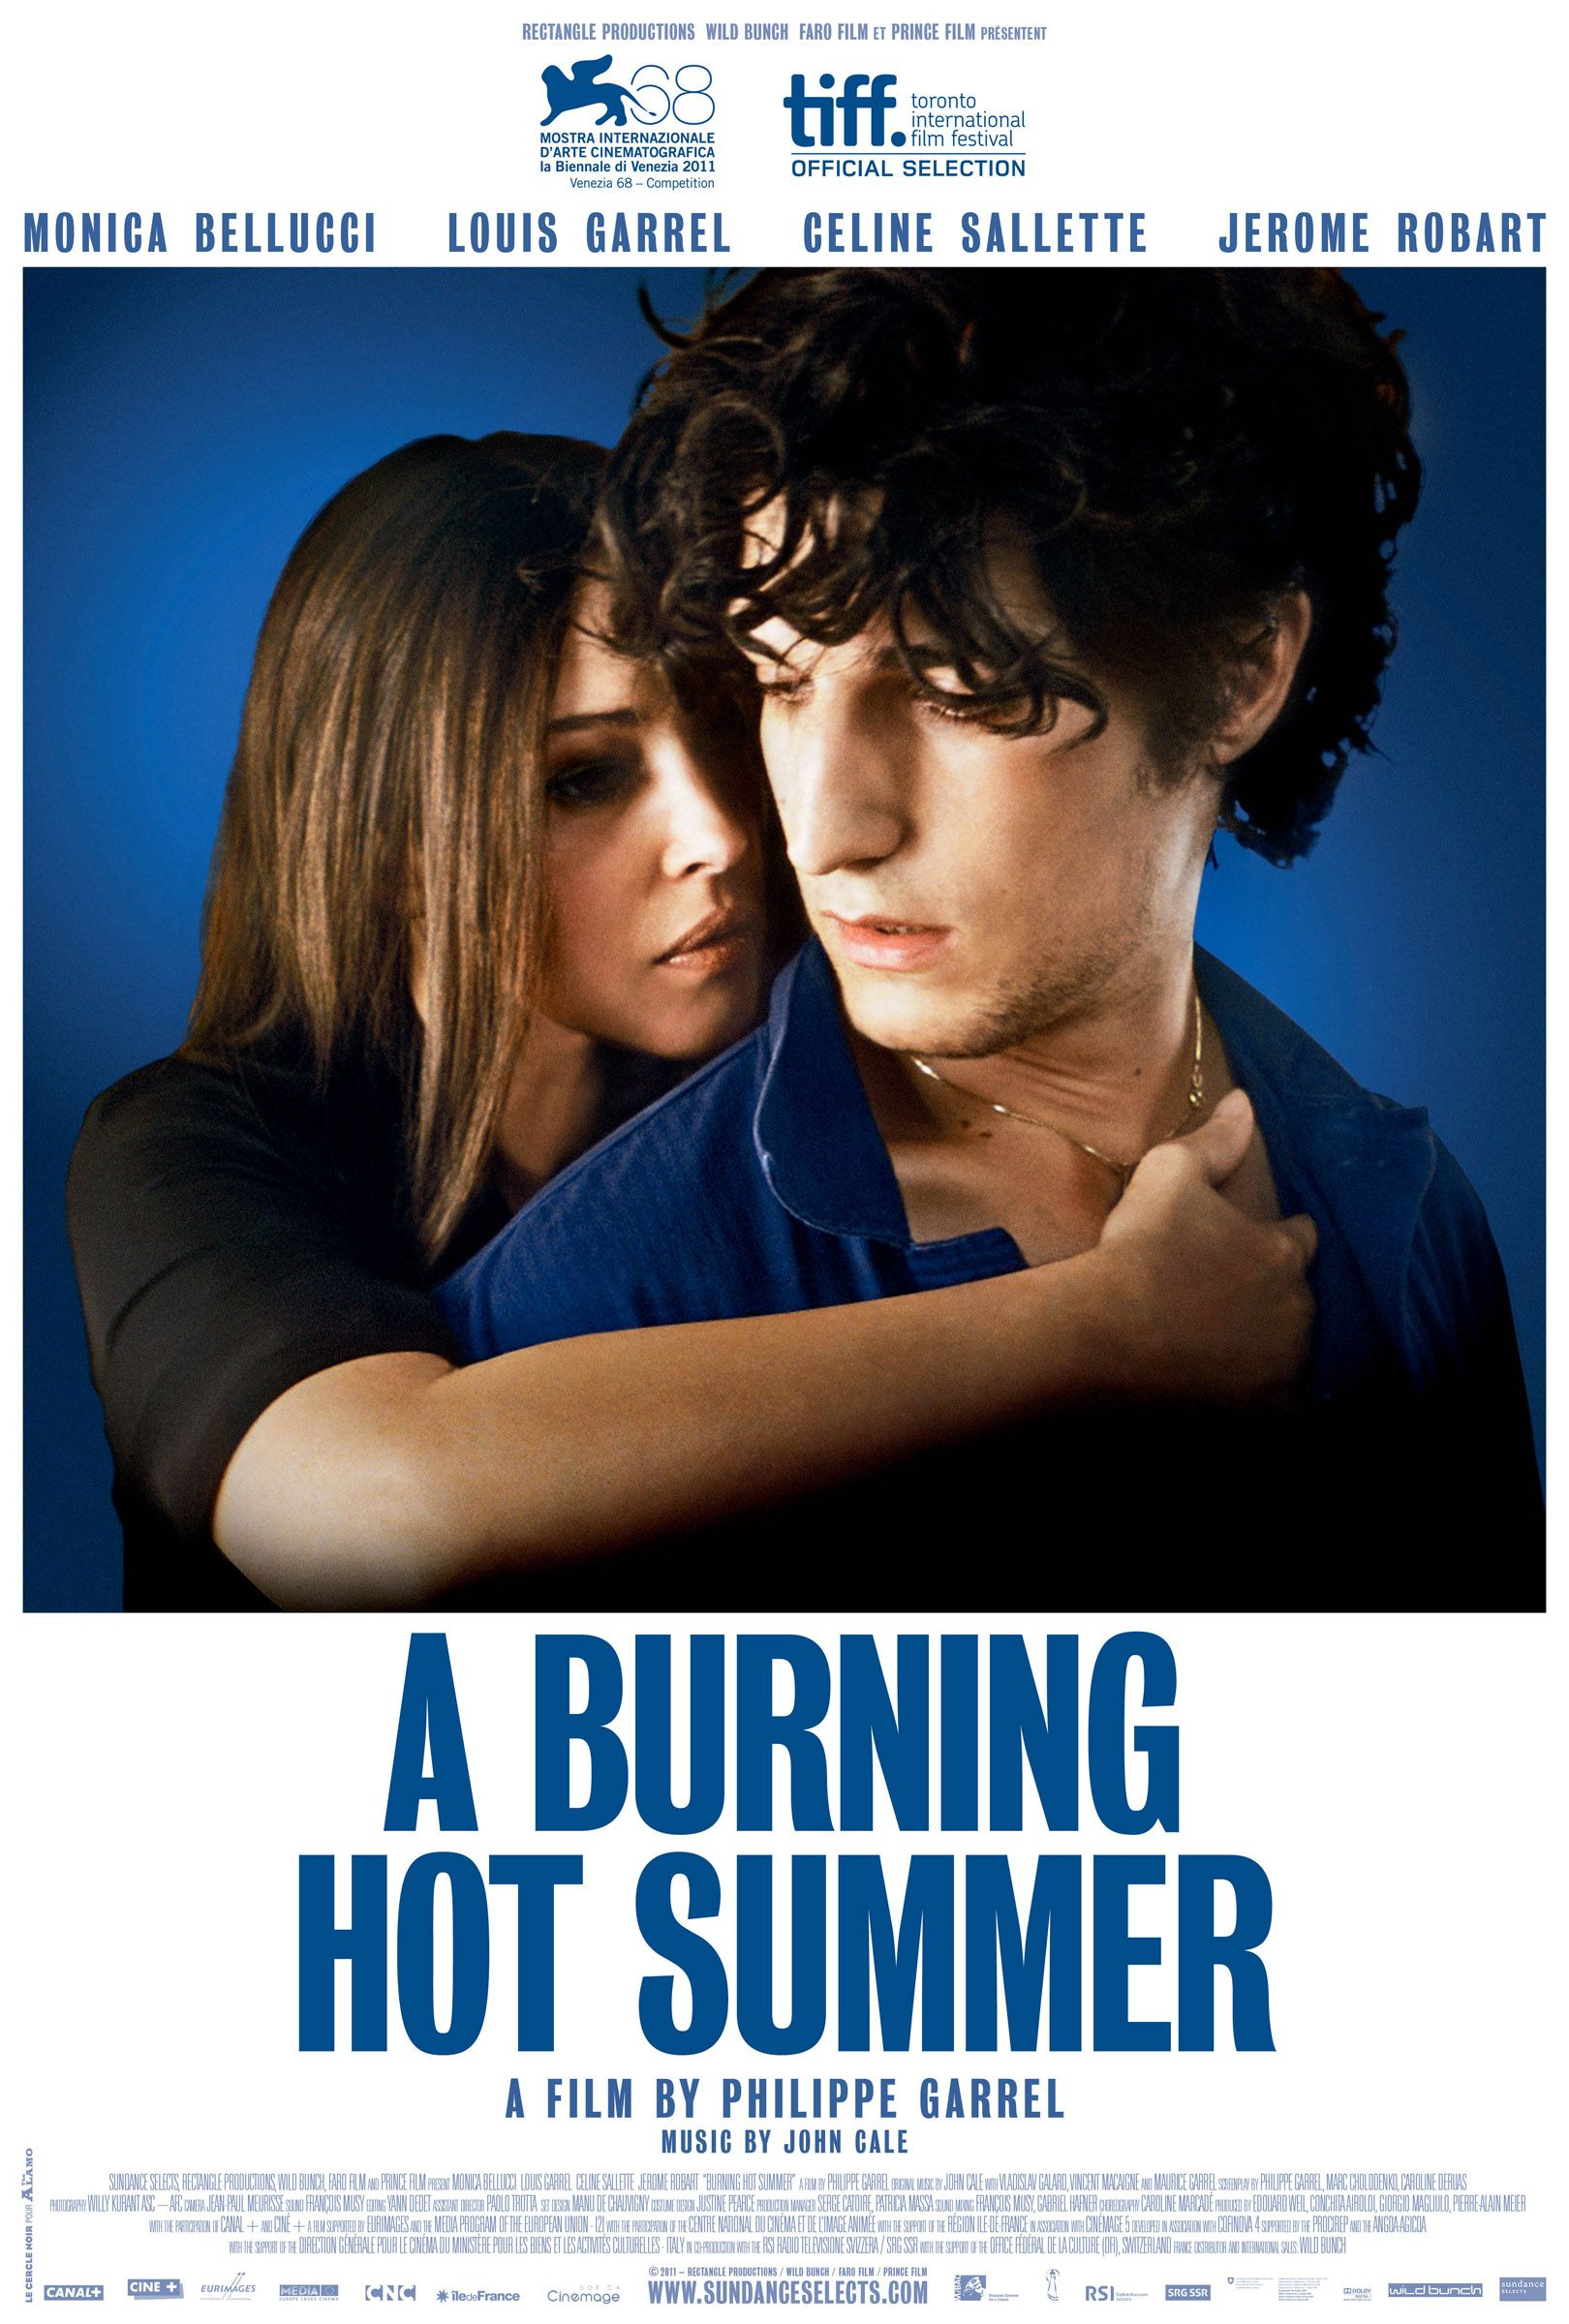 a burning hot summer - bellucci can't go wrong | movies | pinterest